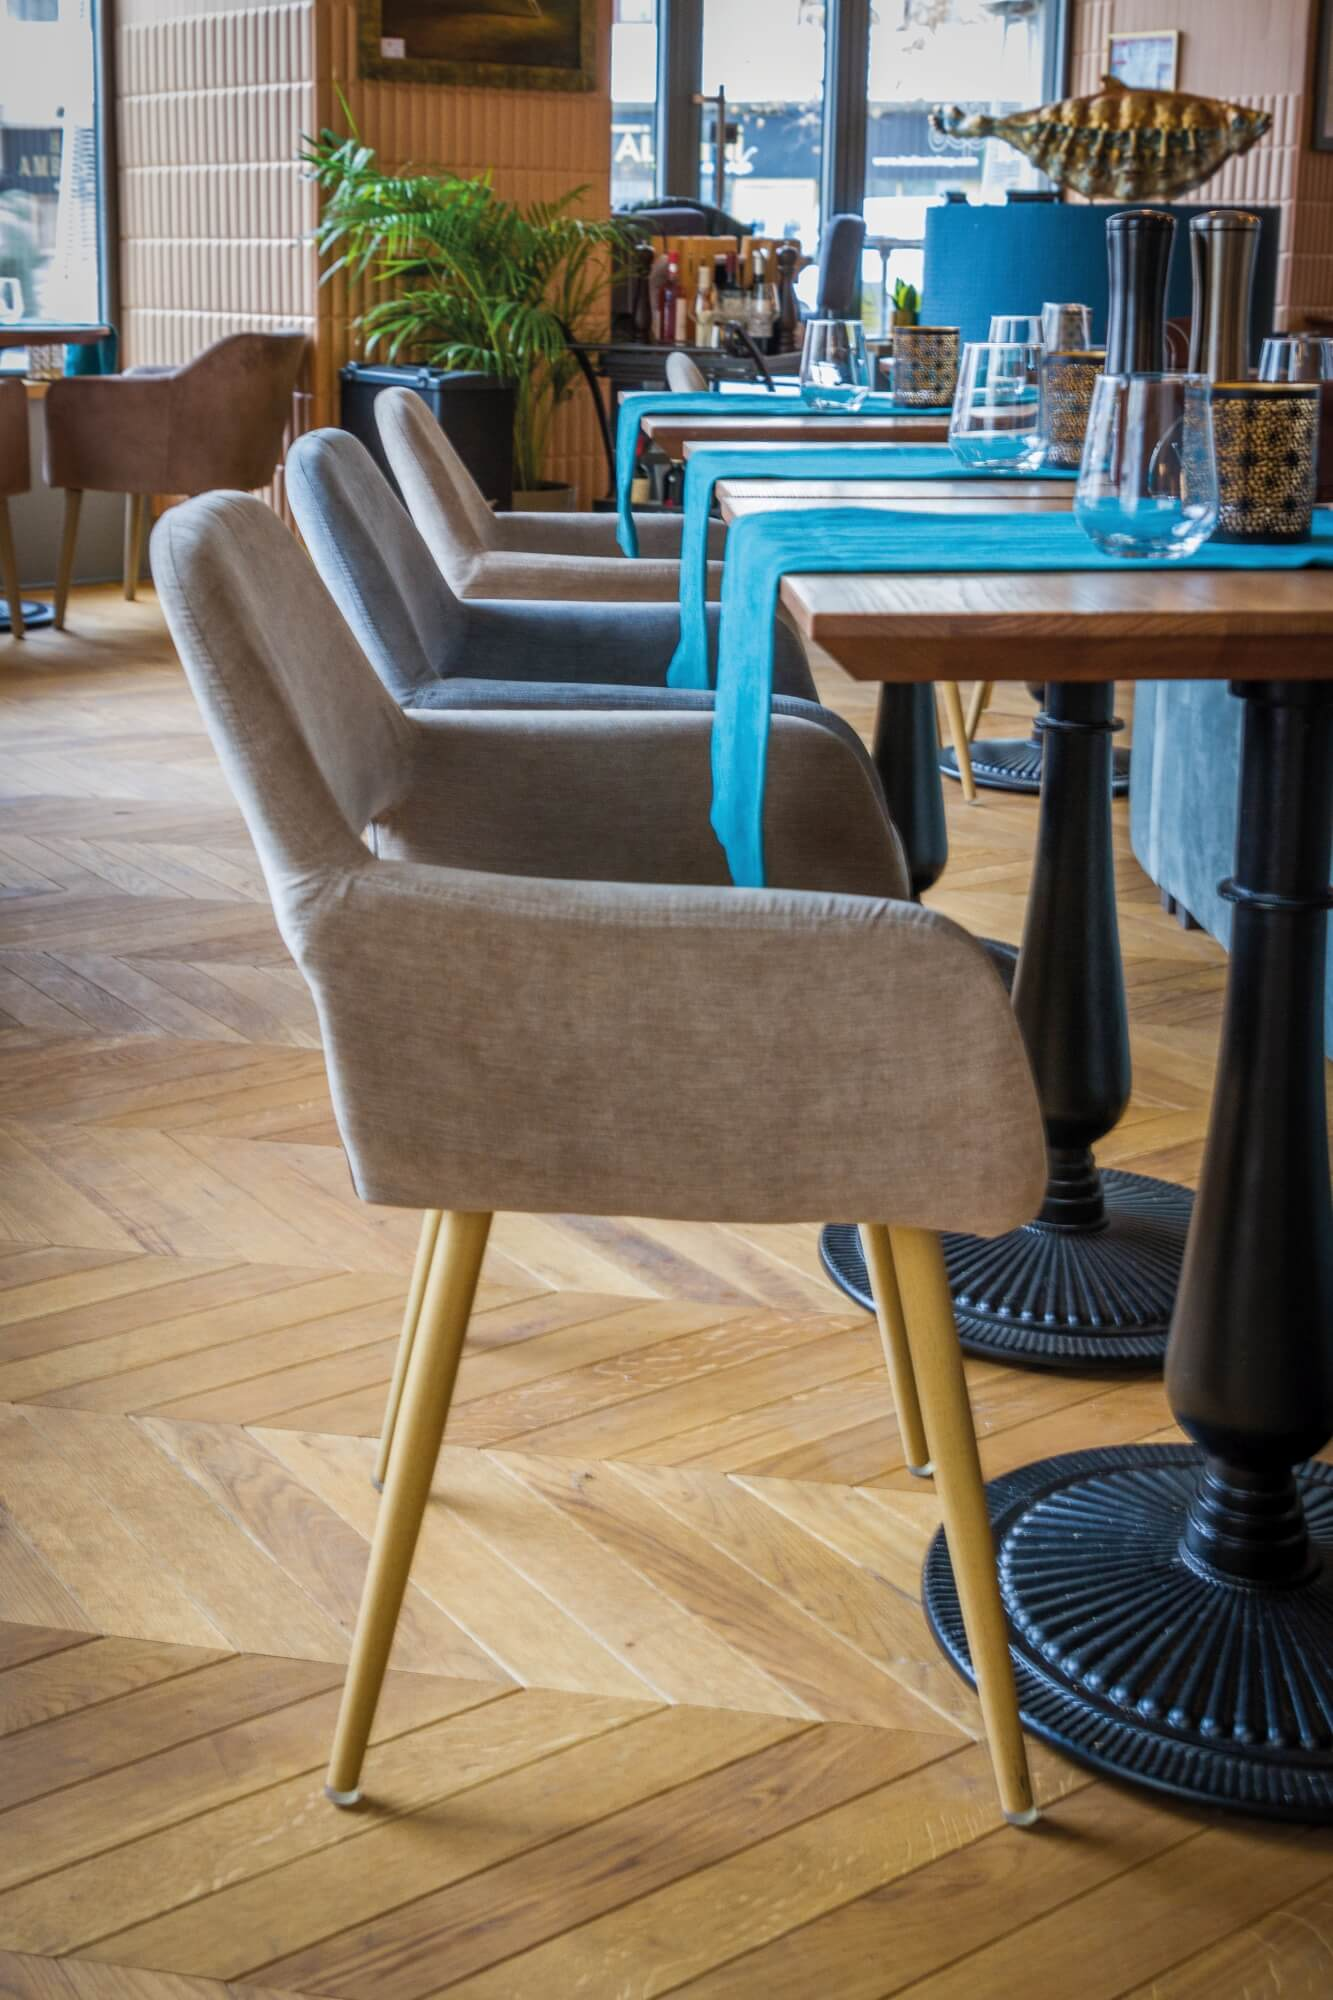 Chevron hardwood flooring in a restaurant with tables and chairs.